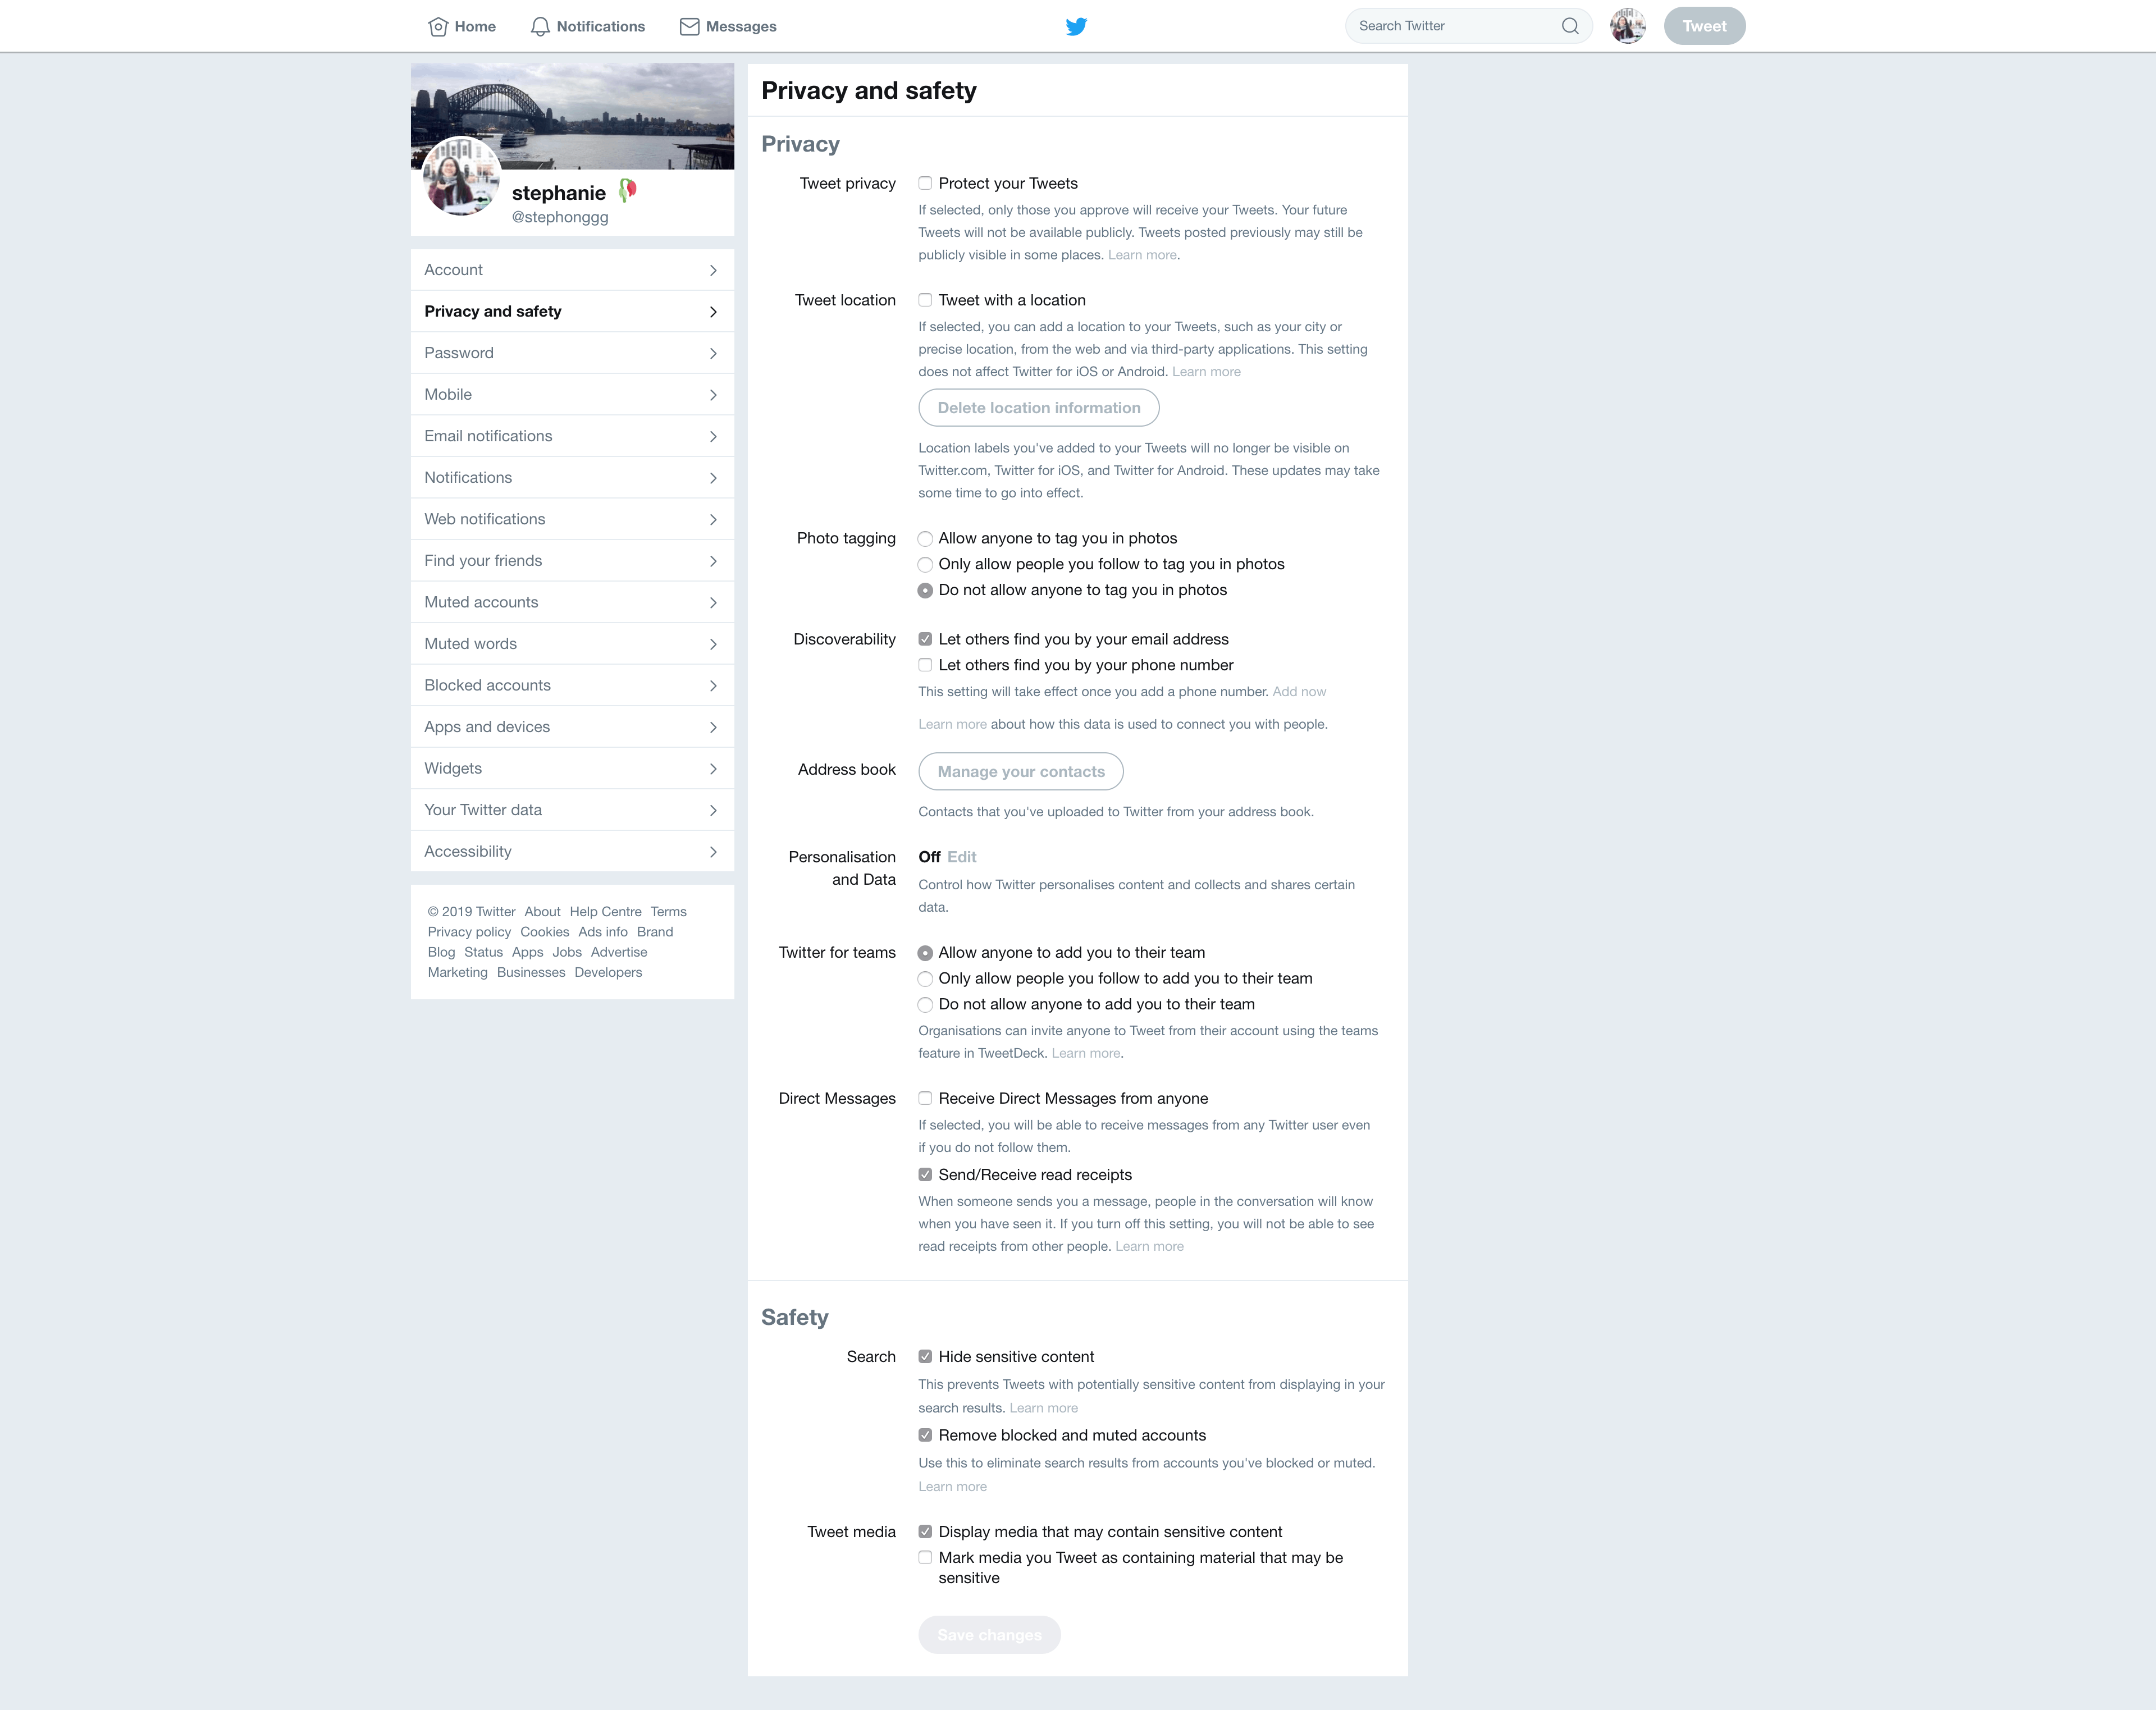 Privacy and Safety Settings by Twitter